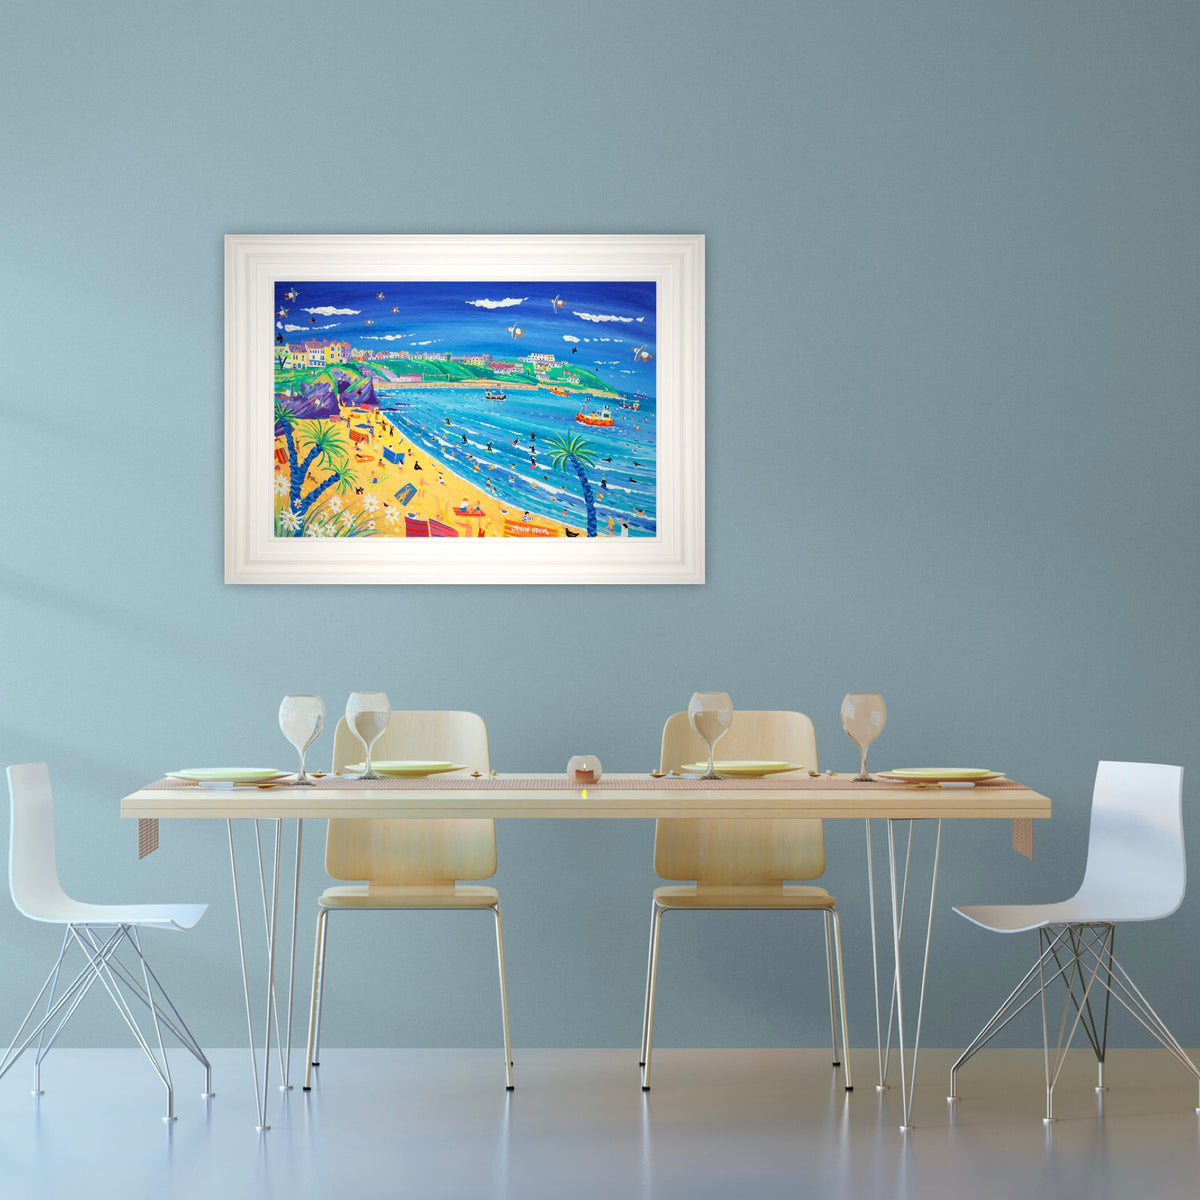 Painting by John Dyer. Surfing and Sunbathing, Great Western Beach, Newquay. 